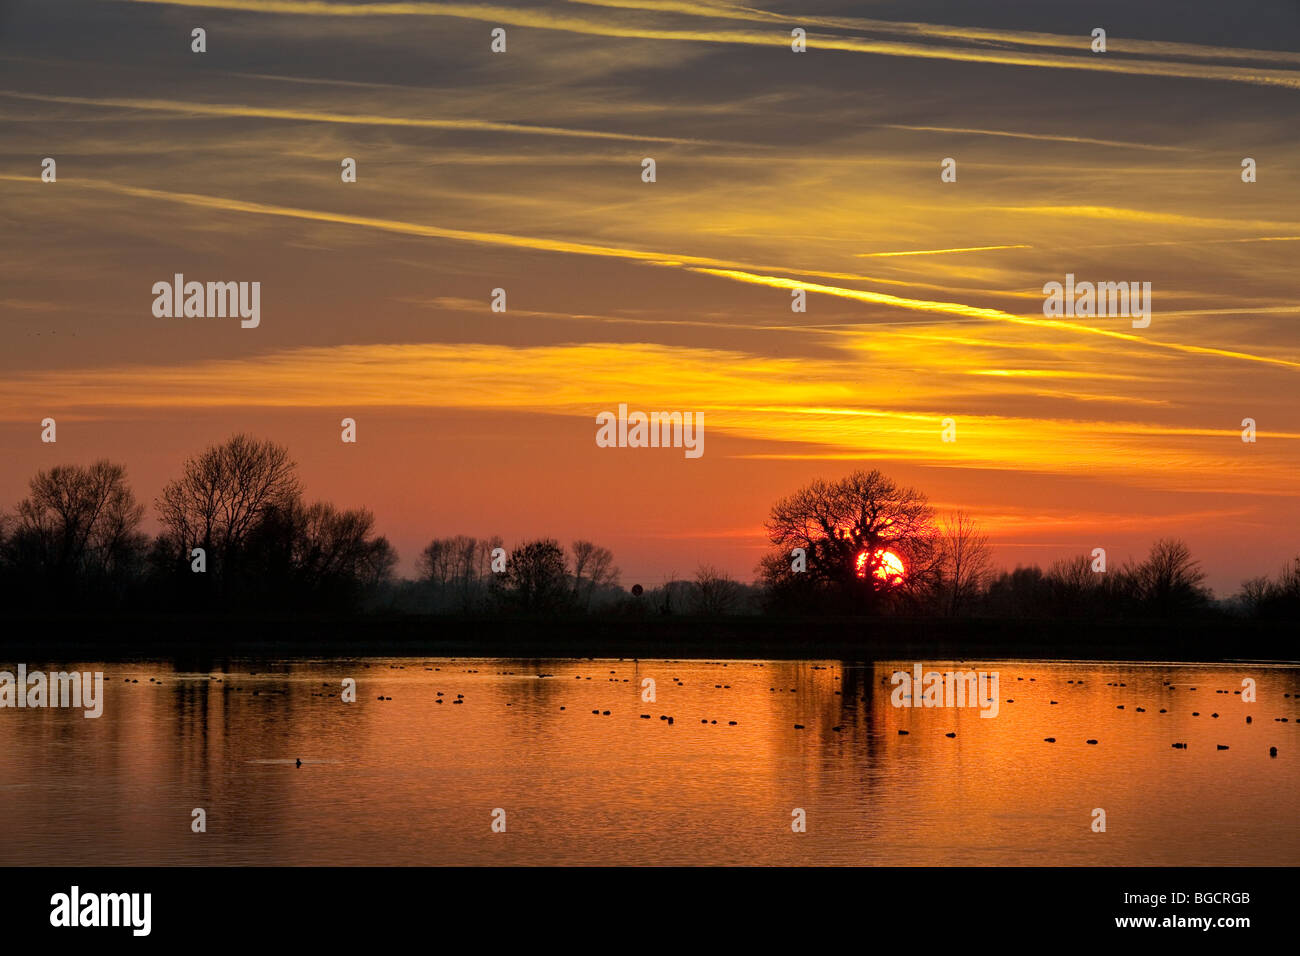 Sun sets over Startop Reservoir,richly coloured sky,trees in silhouette,warm glow reflected off calm water - Stock Image